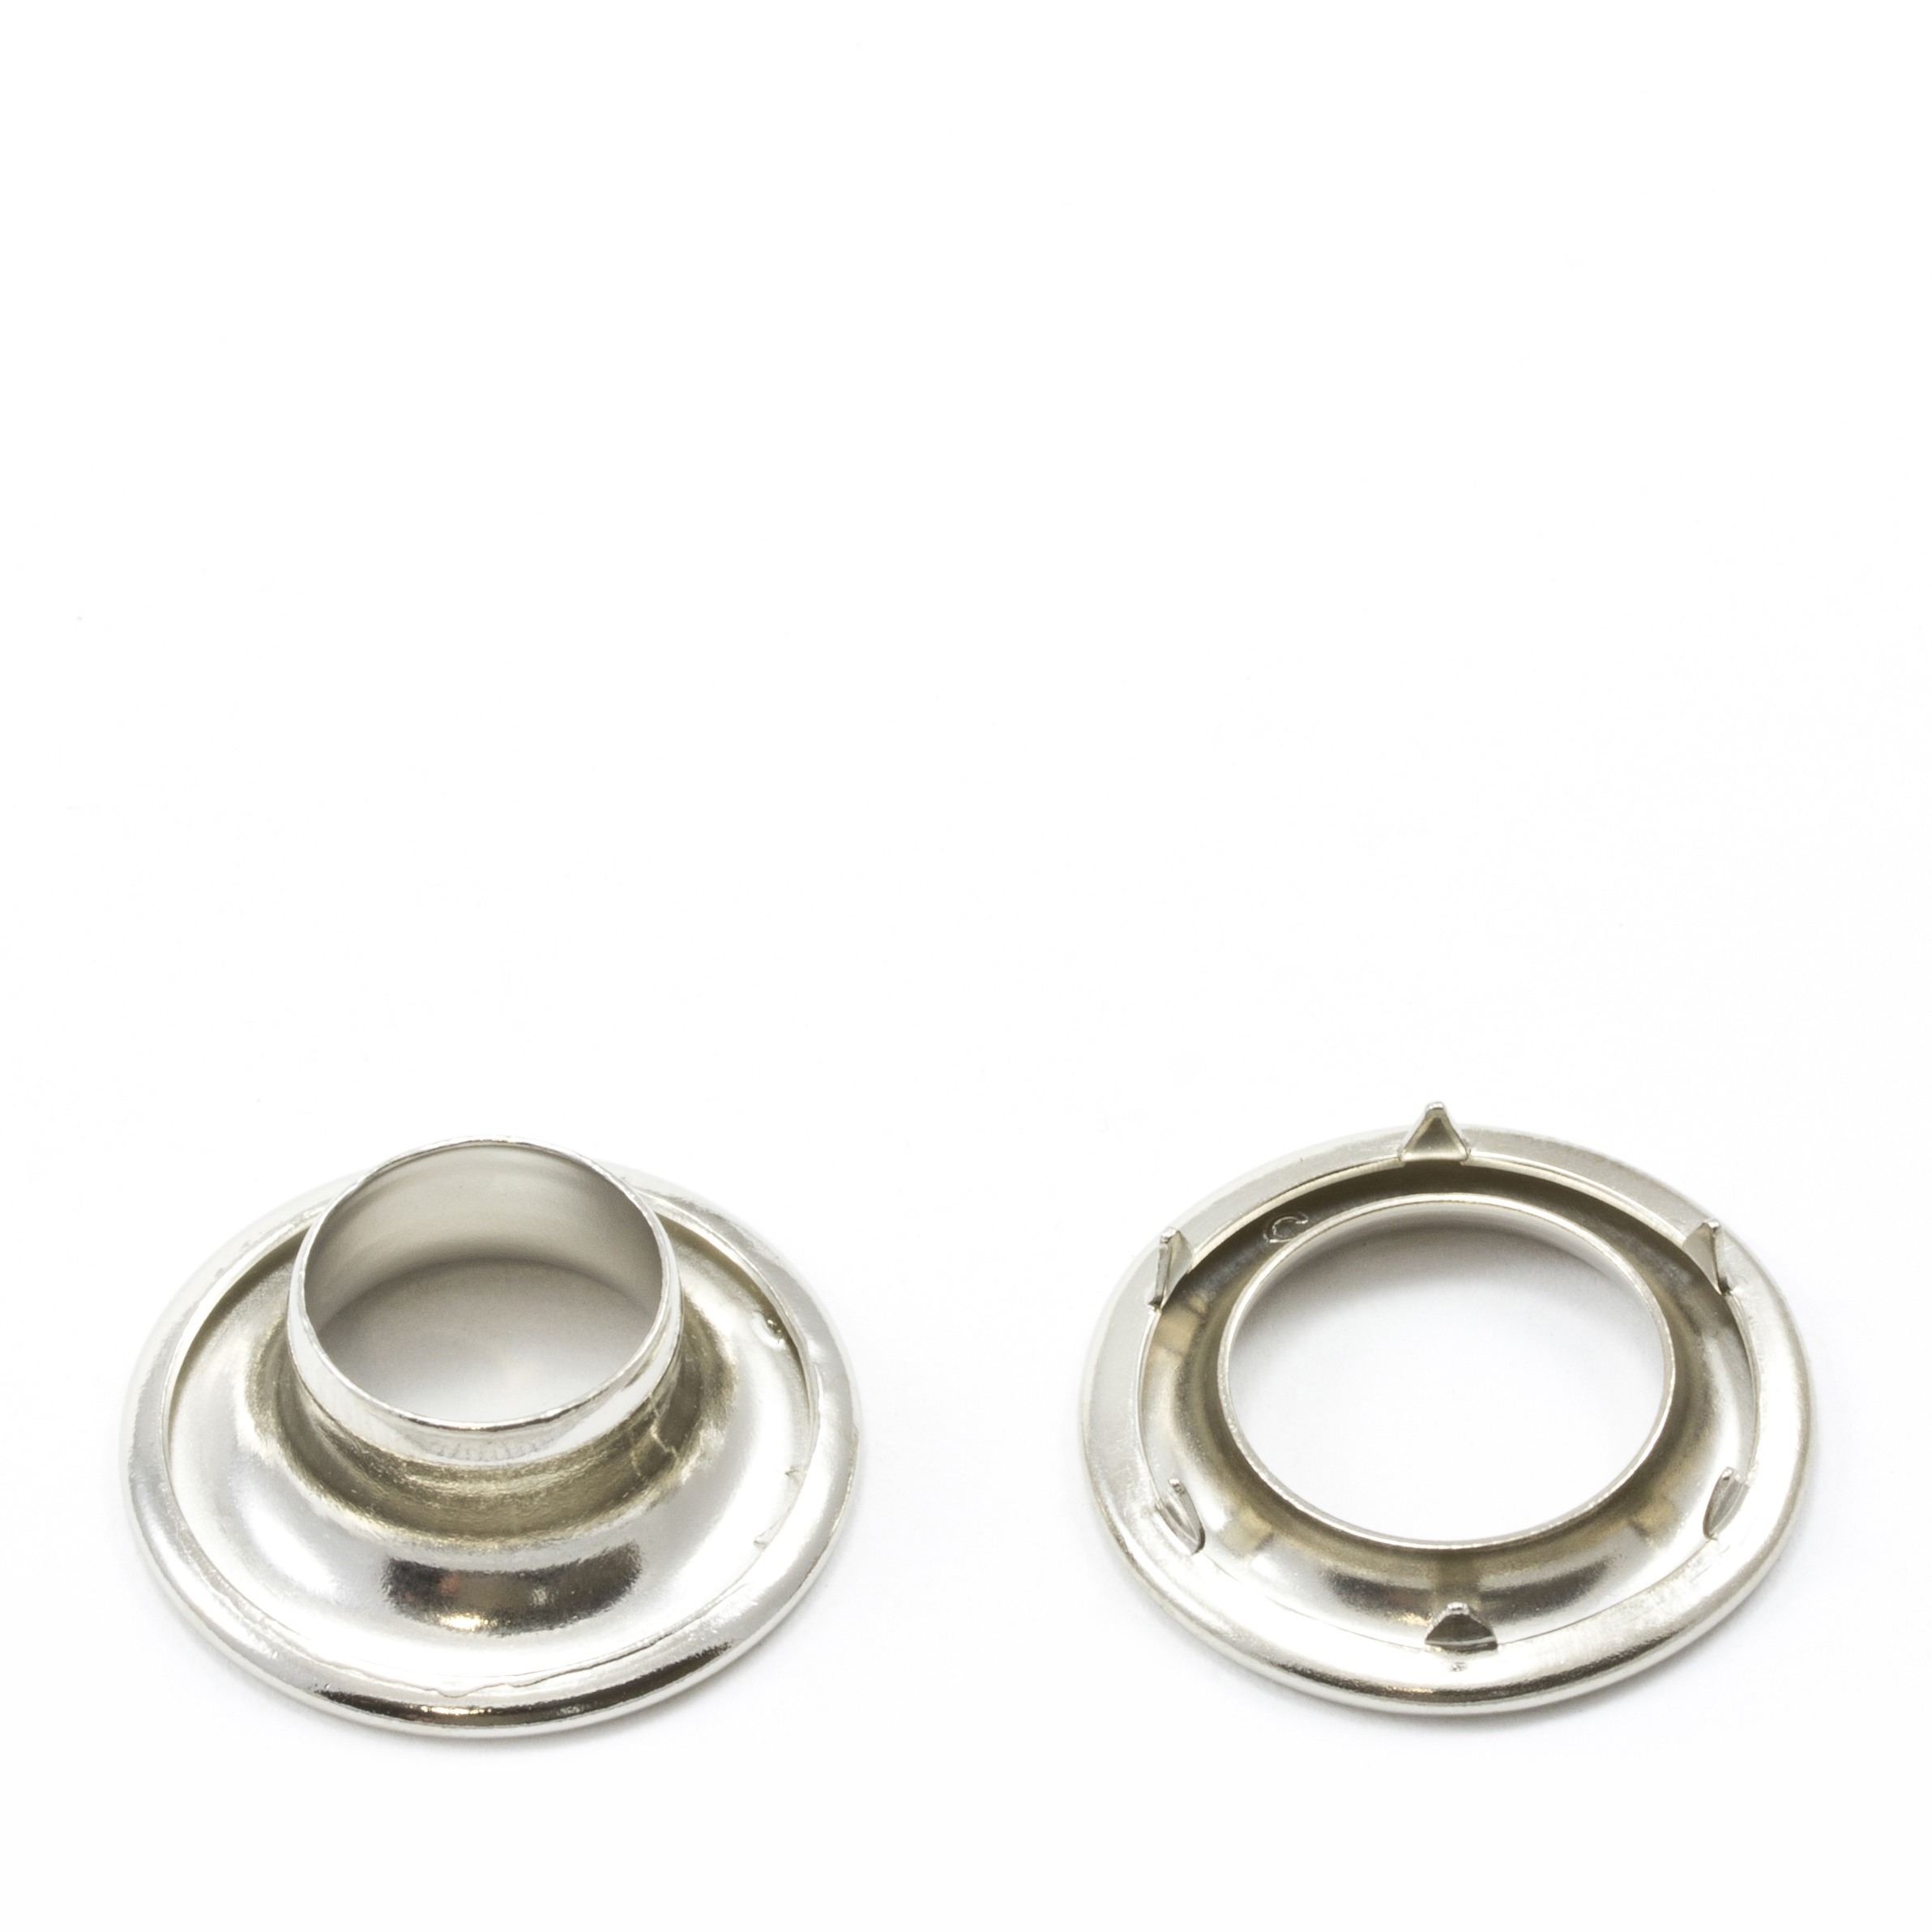 Rolled Rim Grommet with Spur Washer #2 Brass Nickel Plated 7/16